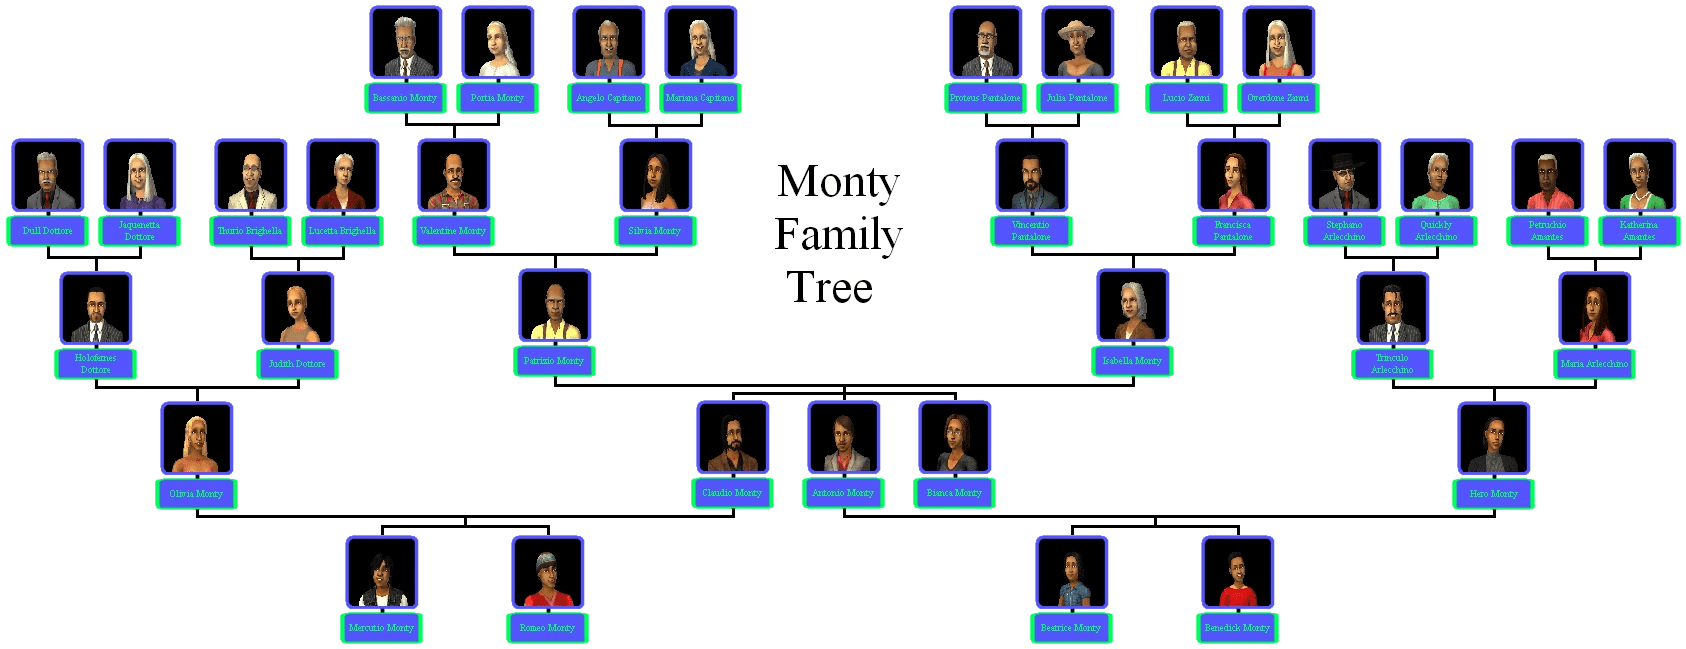 Arte Bianca Wikipedia Image Monty Family Tree Png The Sims Wiki Fandom Powered By